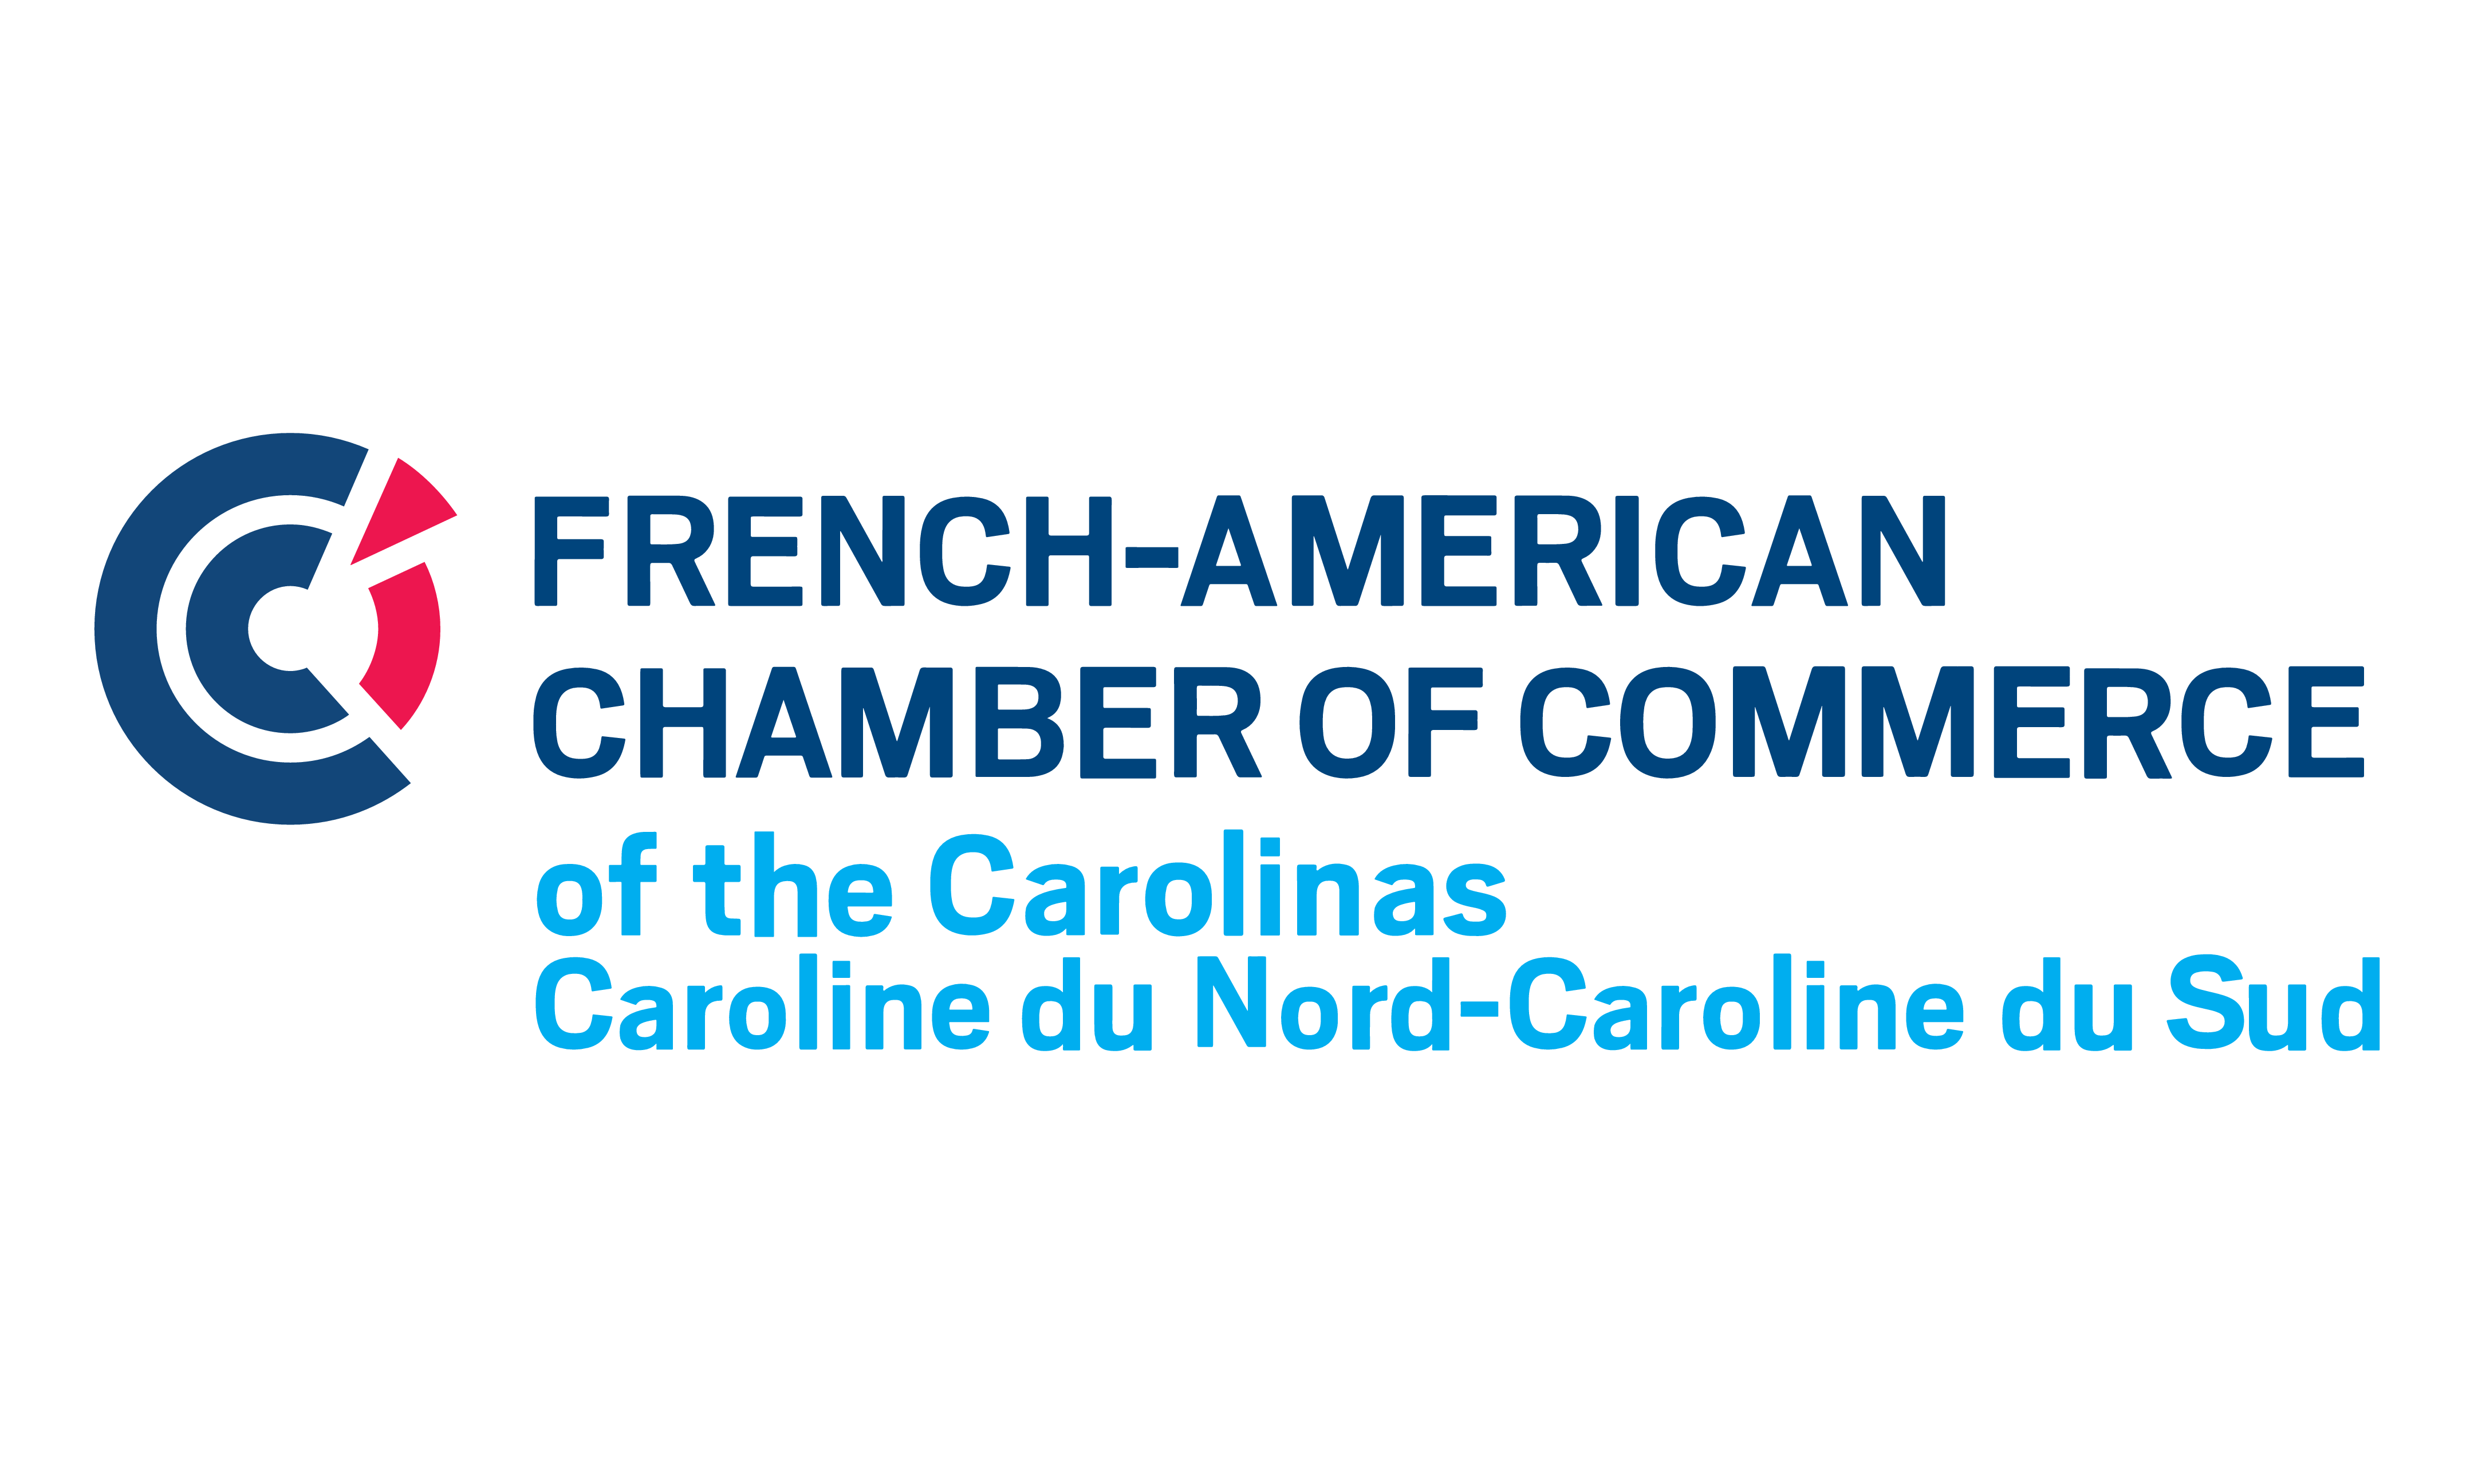 Chambre De Commerce Franco Américaine Paris French American Chamber Of Commerce Of The Carolinas Facc Carolinas